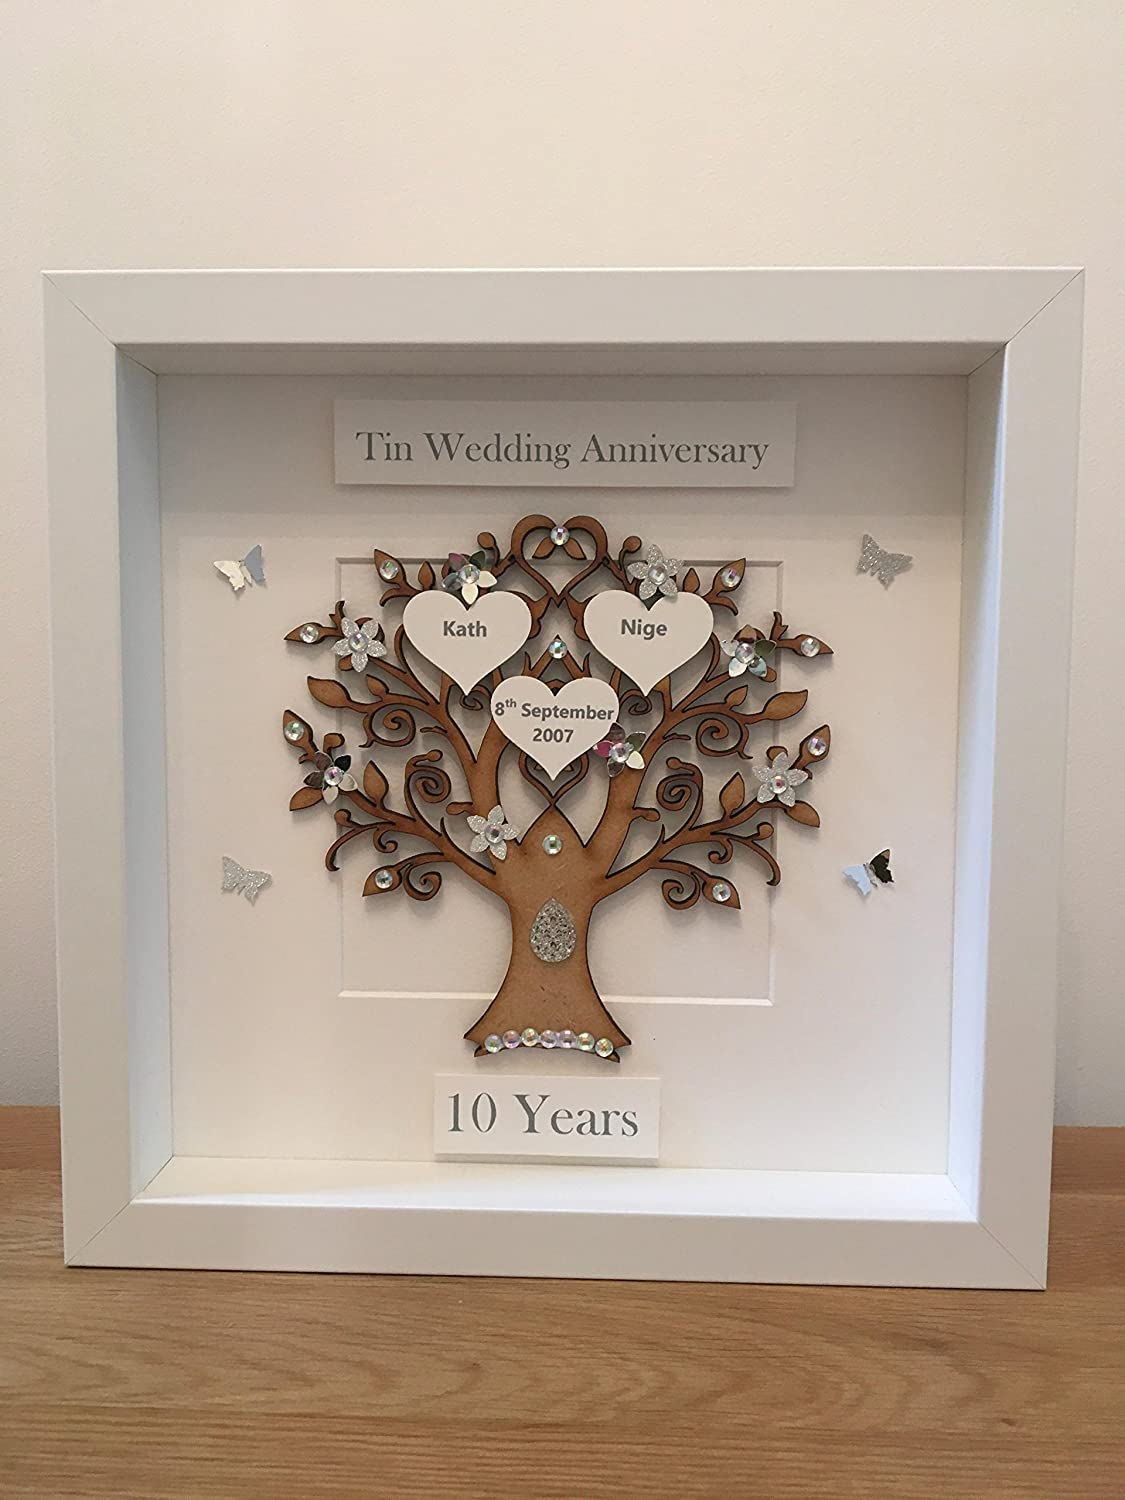 Personalised 10 Years Tin Wedding Anniversary Family Tree Picture